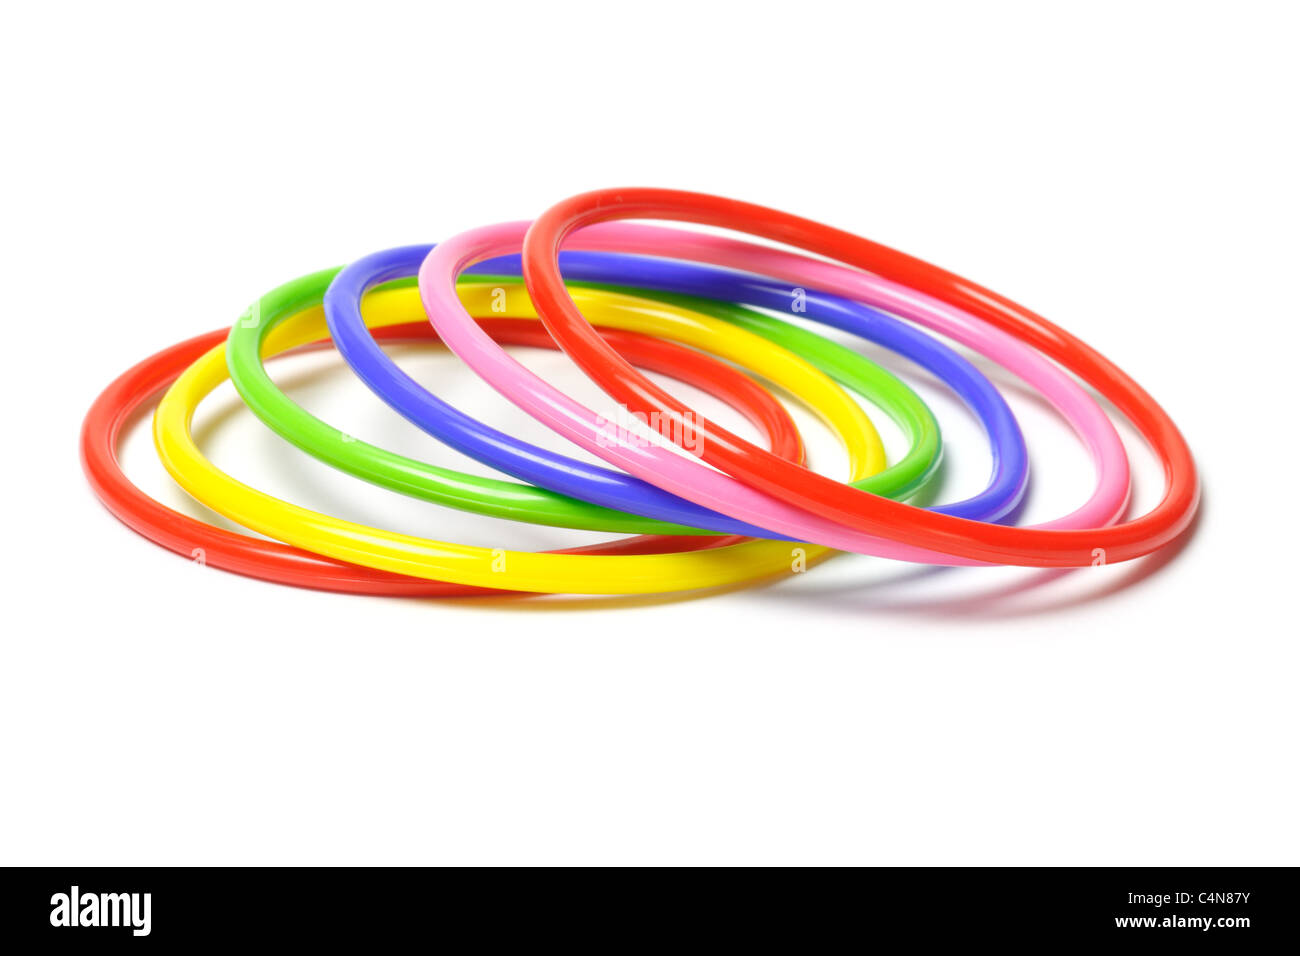 Multicolor plastic bangles isolated on white background - Stock Image